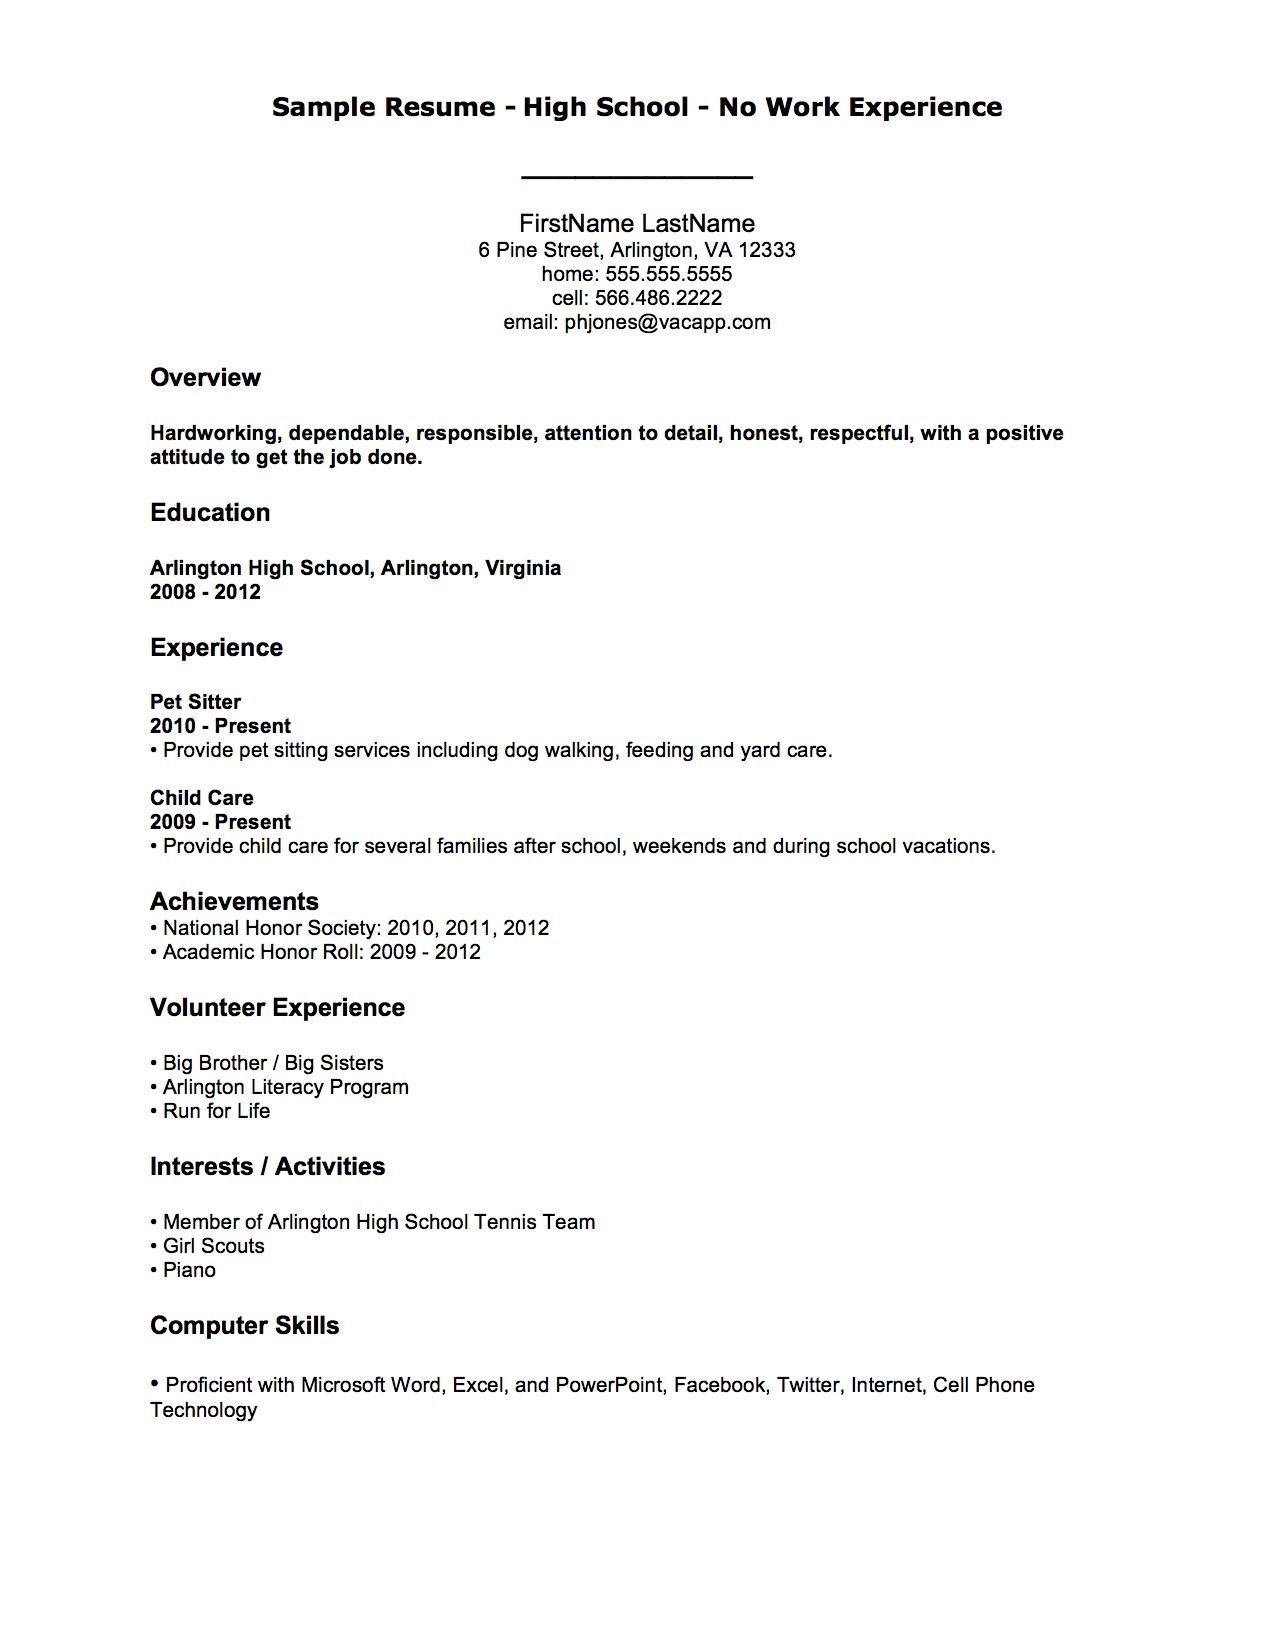 high school student resume examples no work experience 10 job resume examples no experience resume resume for first job - Resume Samples For Job With No Experience